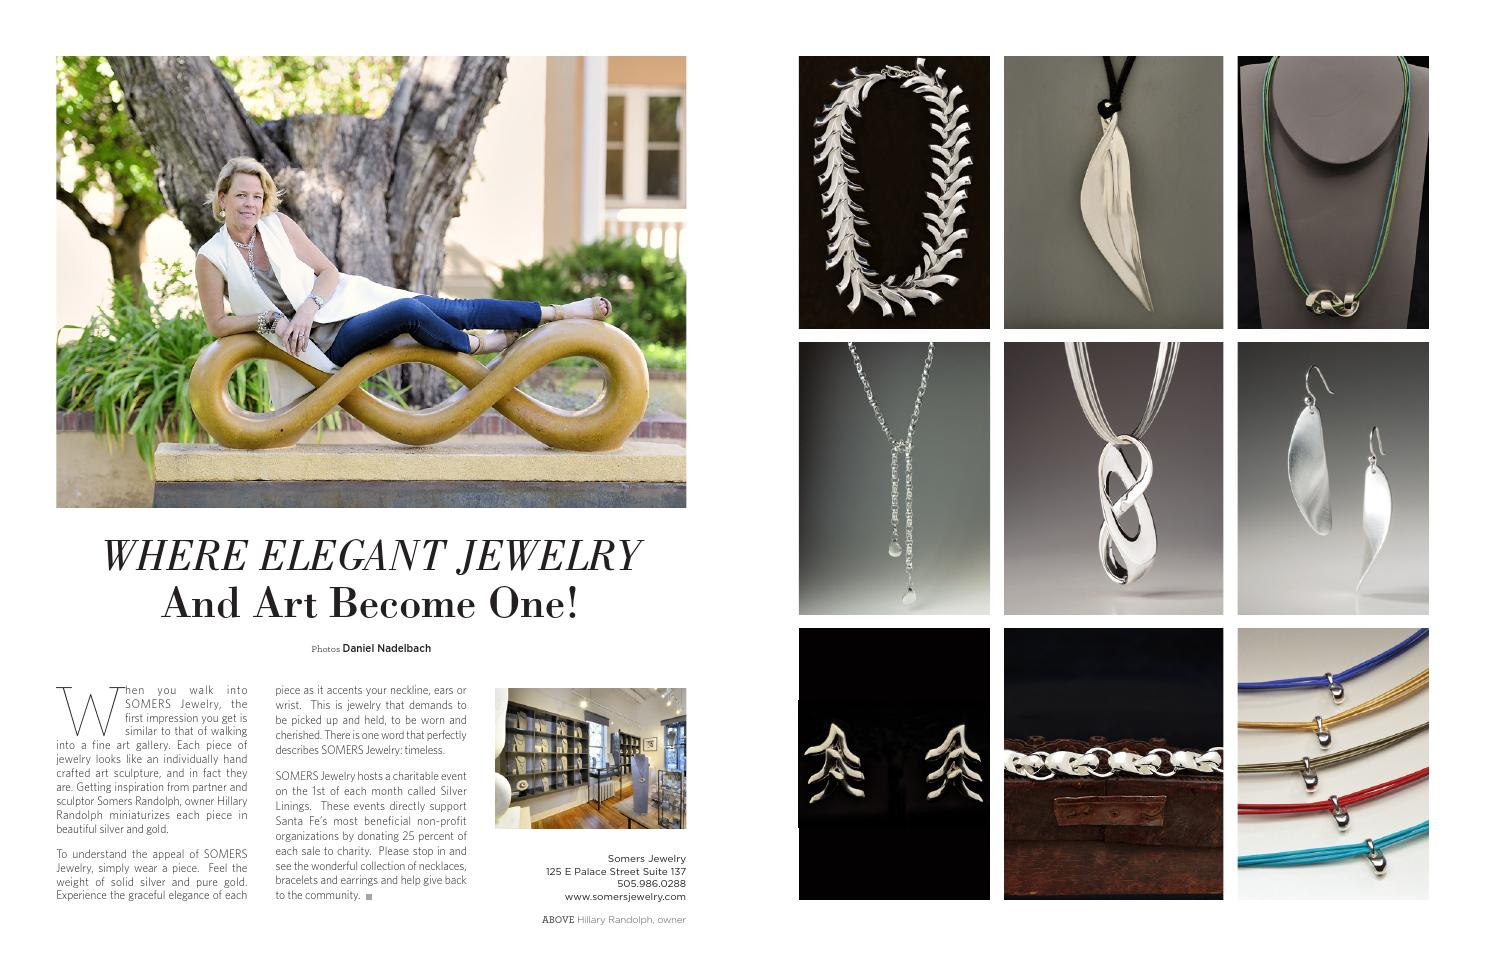 WHERE ELEGANT JEWELRY AND ART BECOME ONE! by Fine Lifestyles - issuu